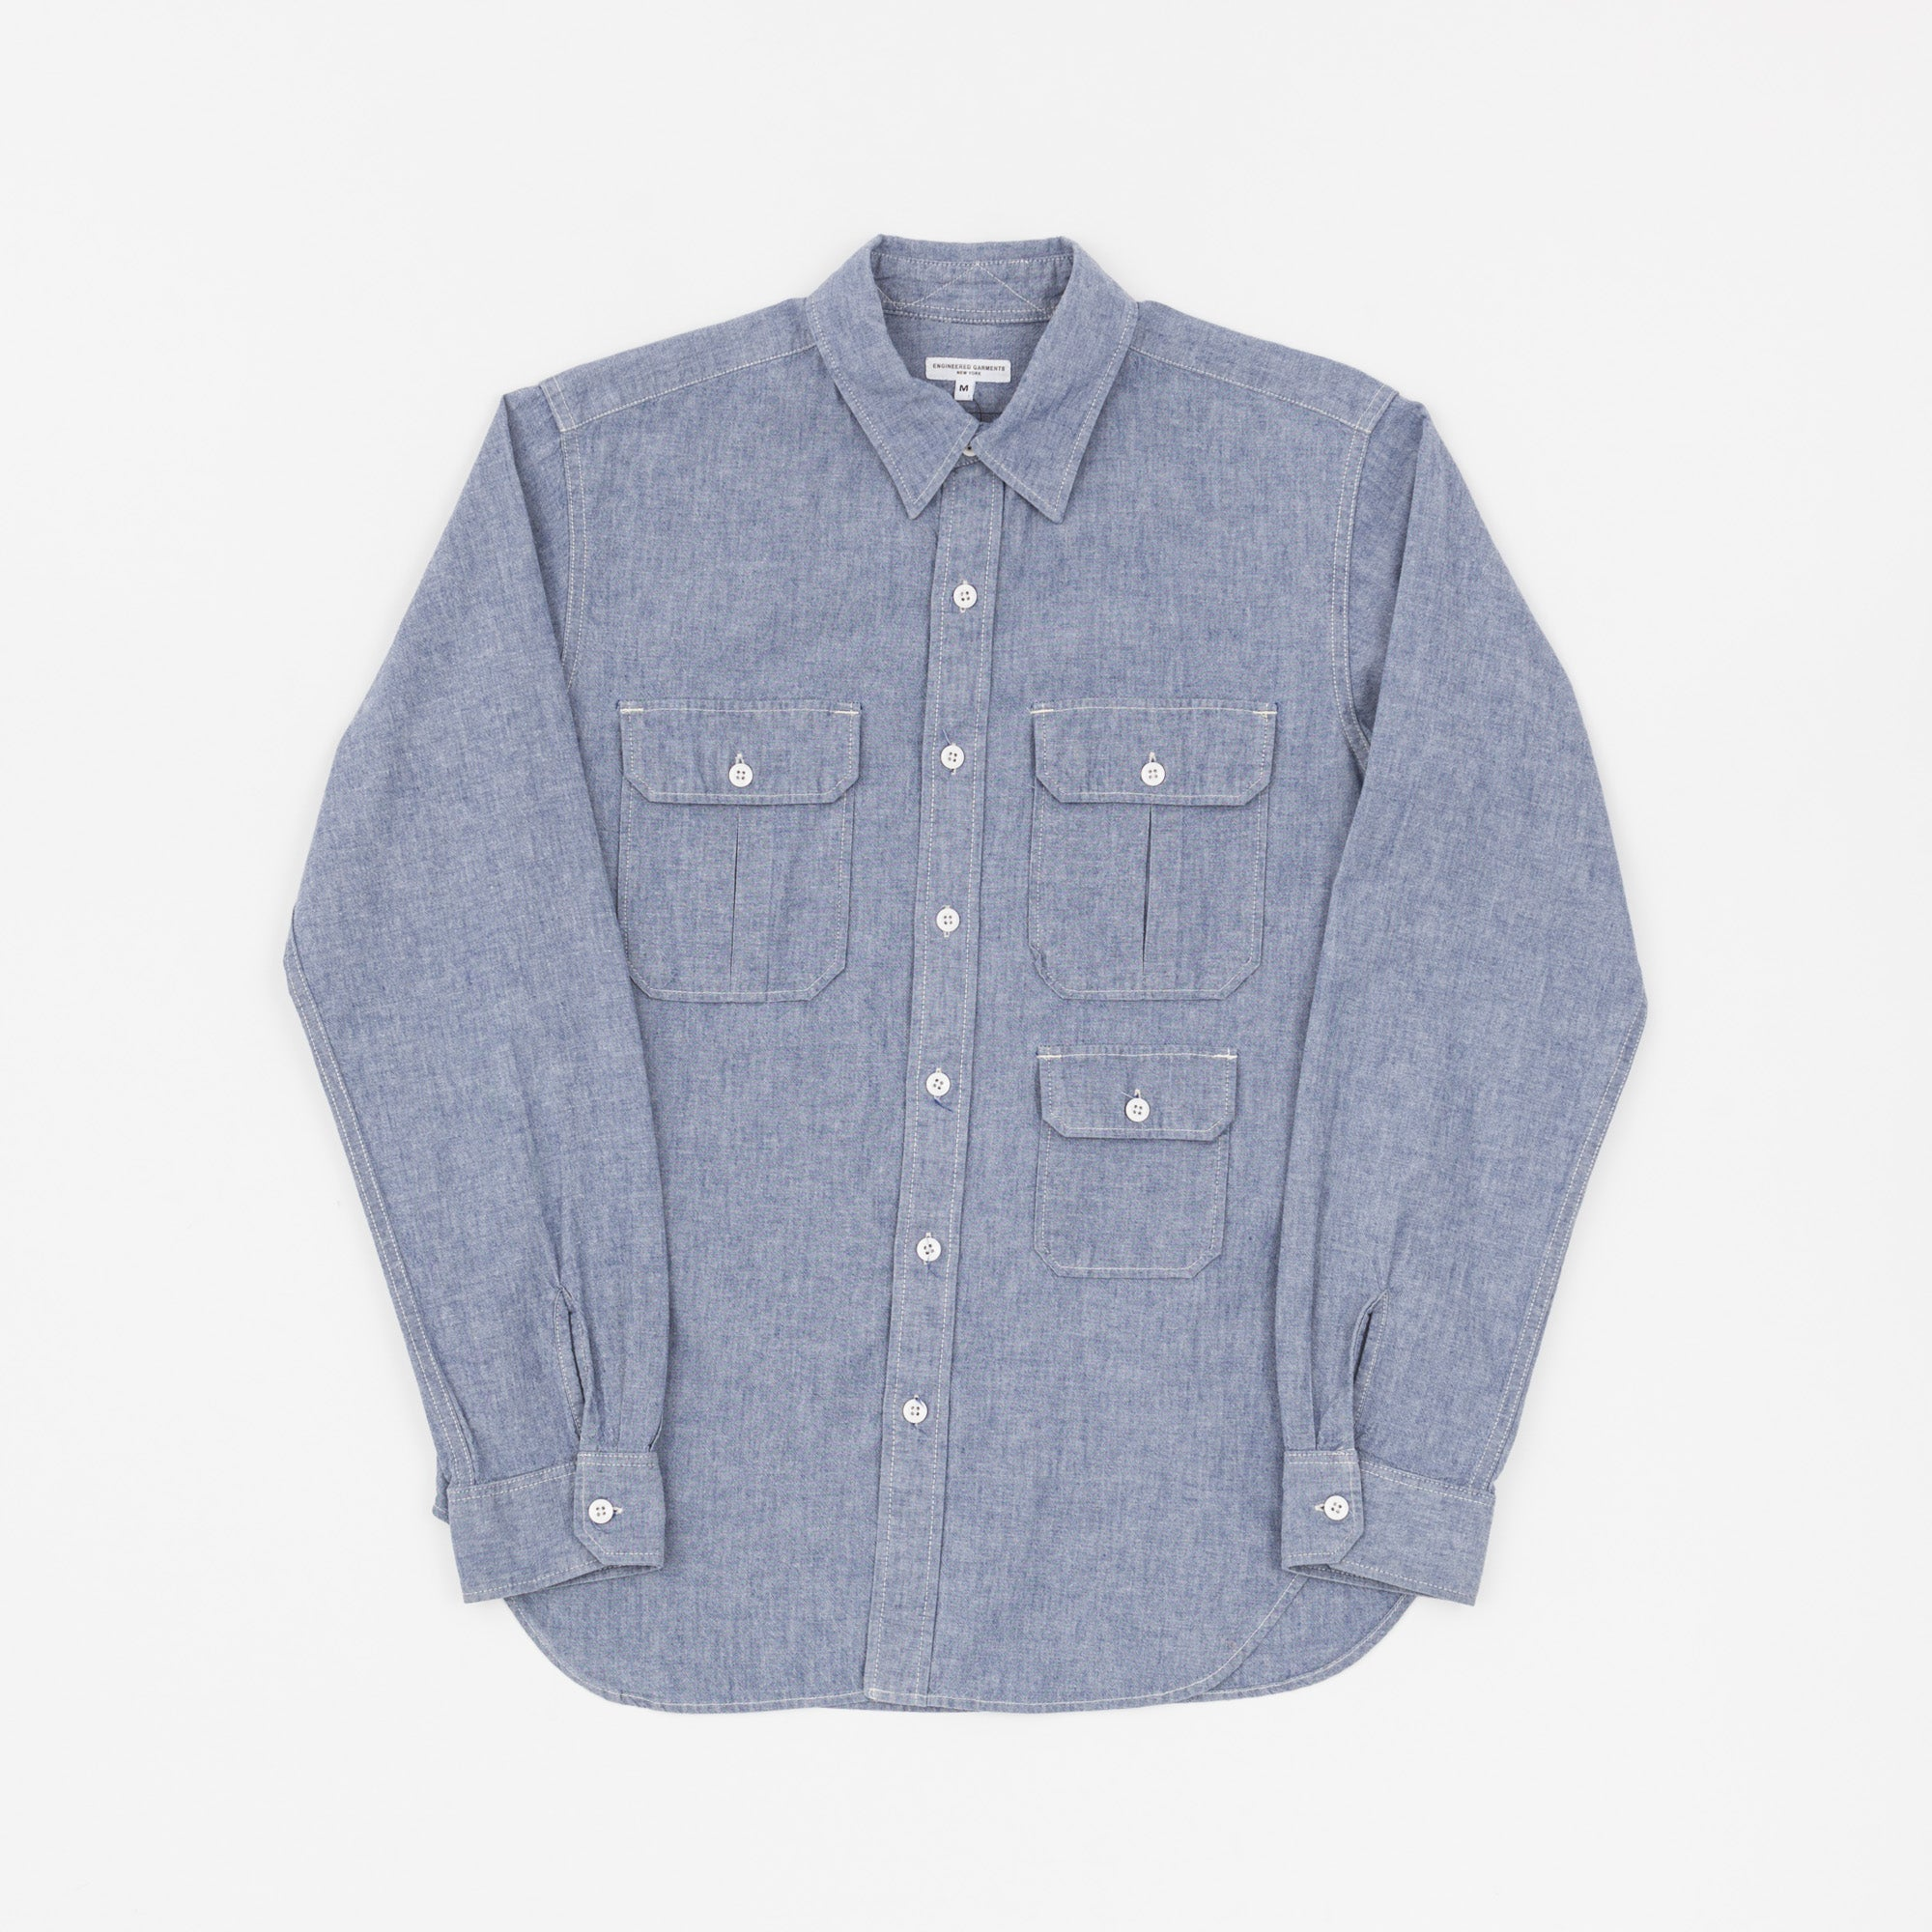 Engineered Garments Chambray Work Shirt